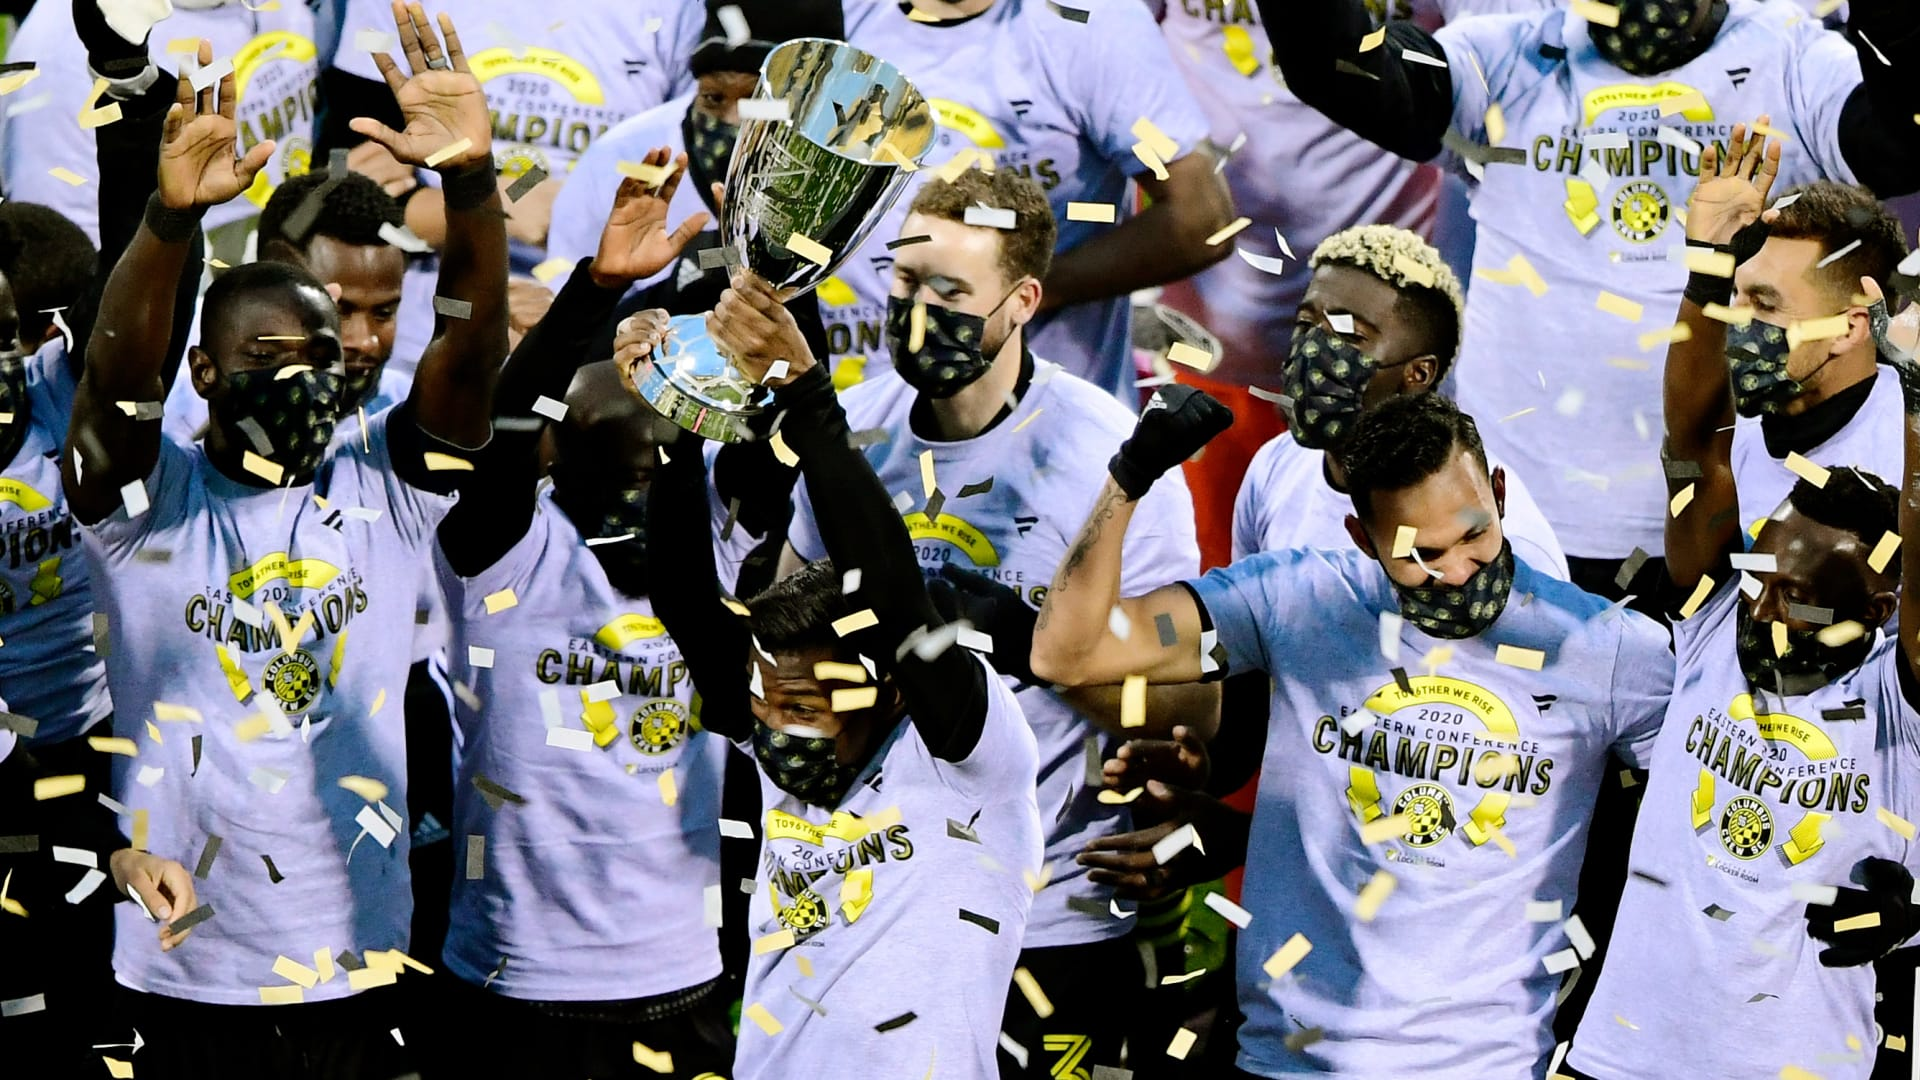 How the Columbus Crew Won the 2020 MLS Championship, 2 Years After Changing Owners